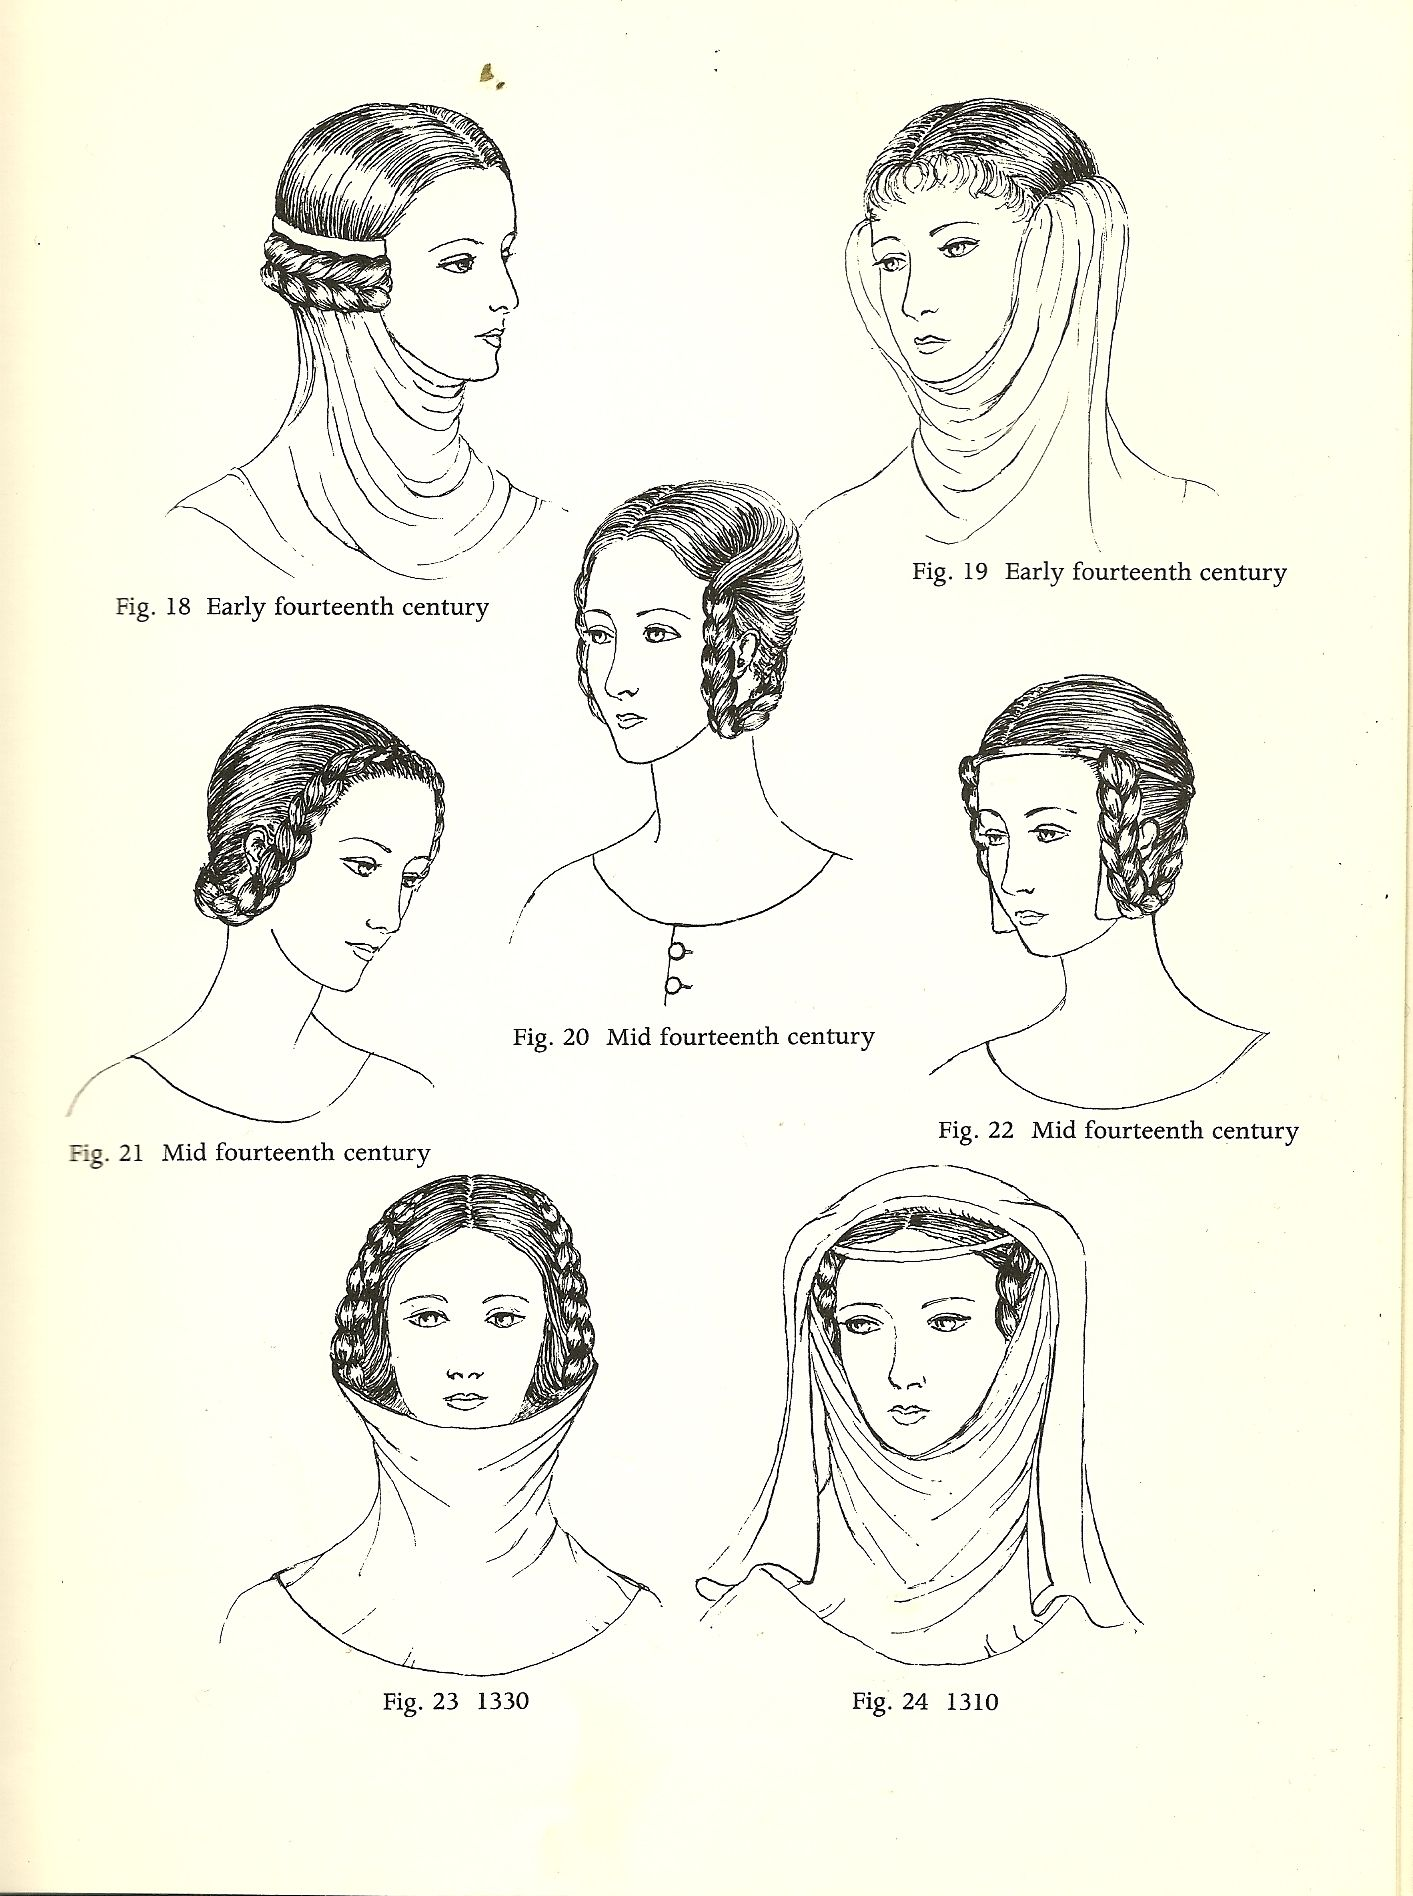 Pin By Annette Young On 1300 1400 S Medieval Early Tudor Medieval Hairstyles 14th Century Medieval